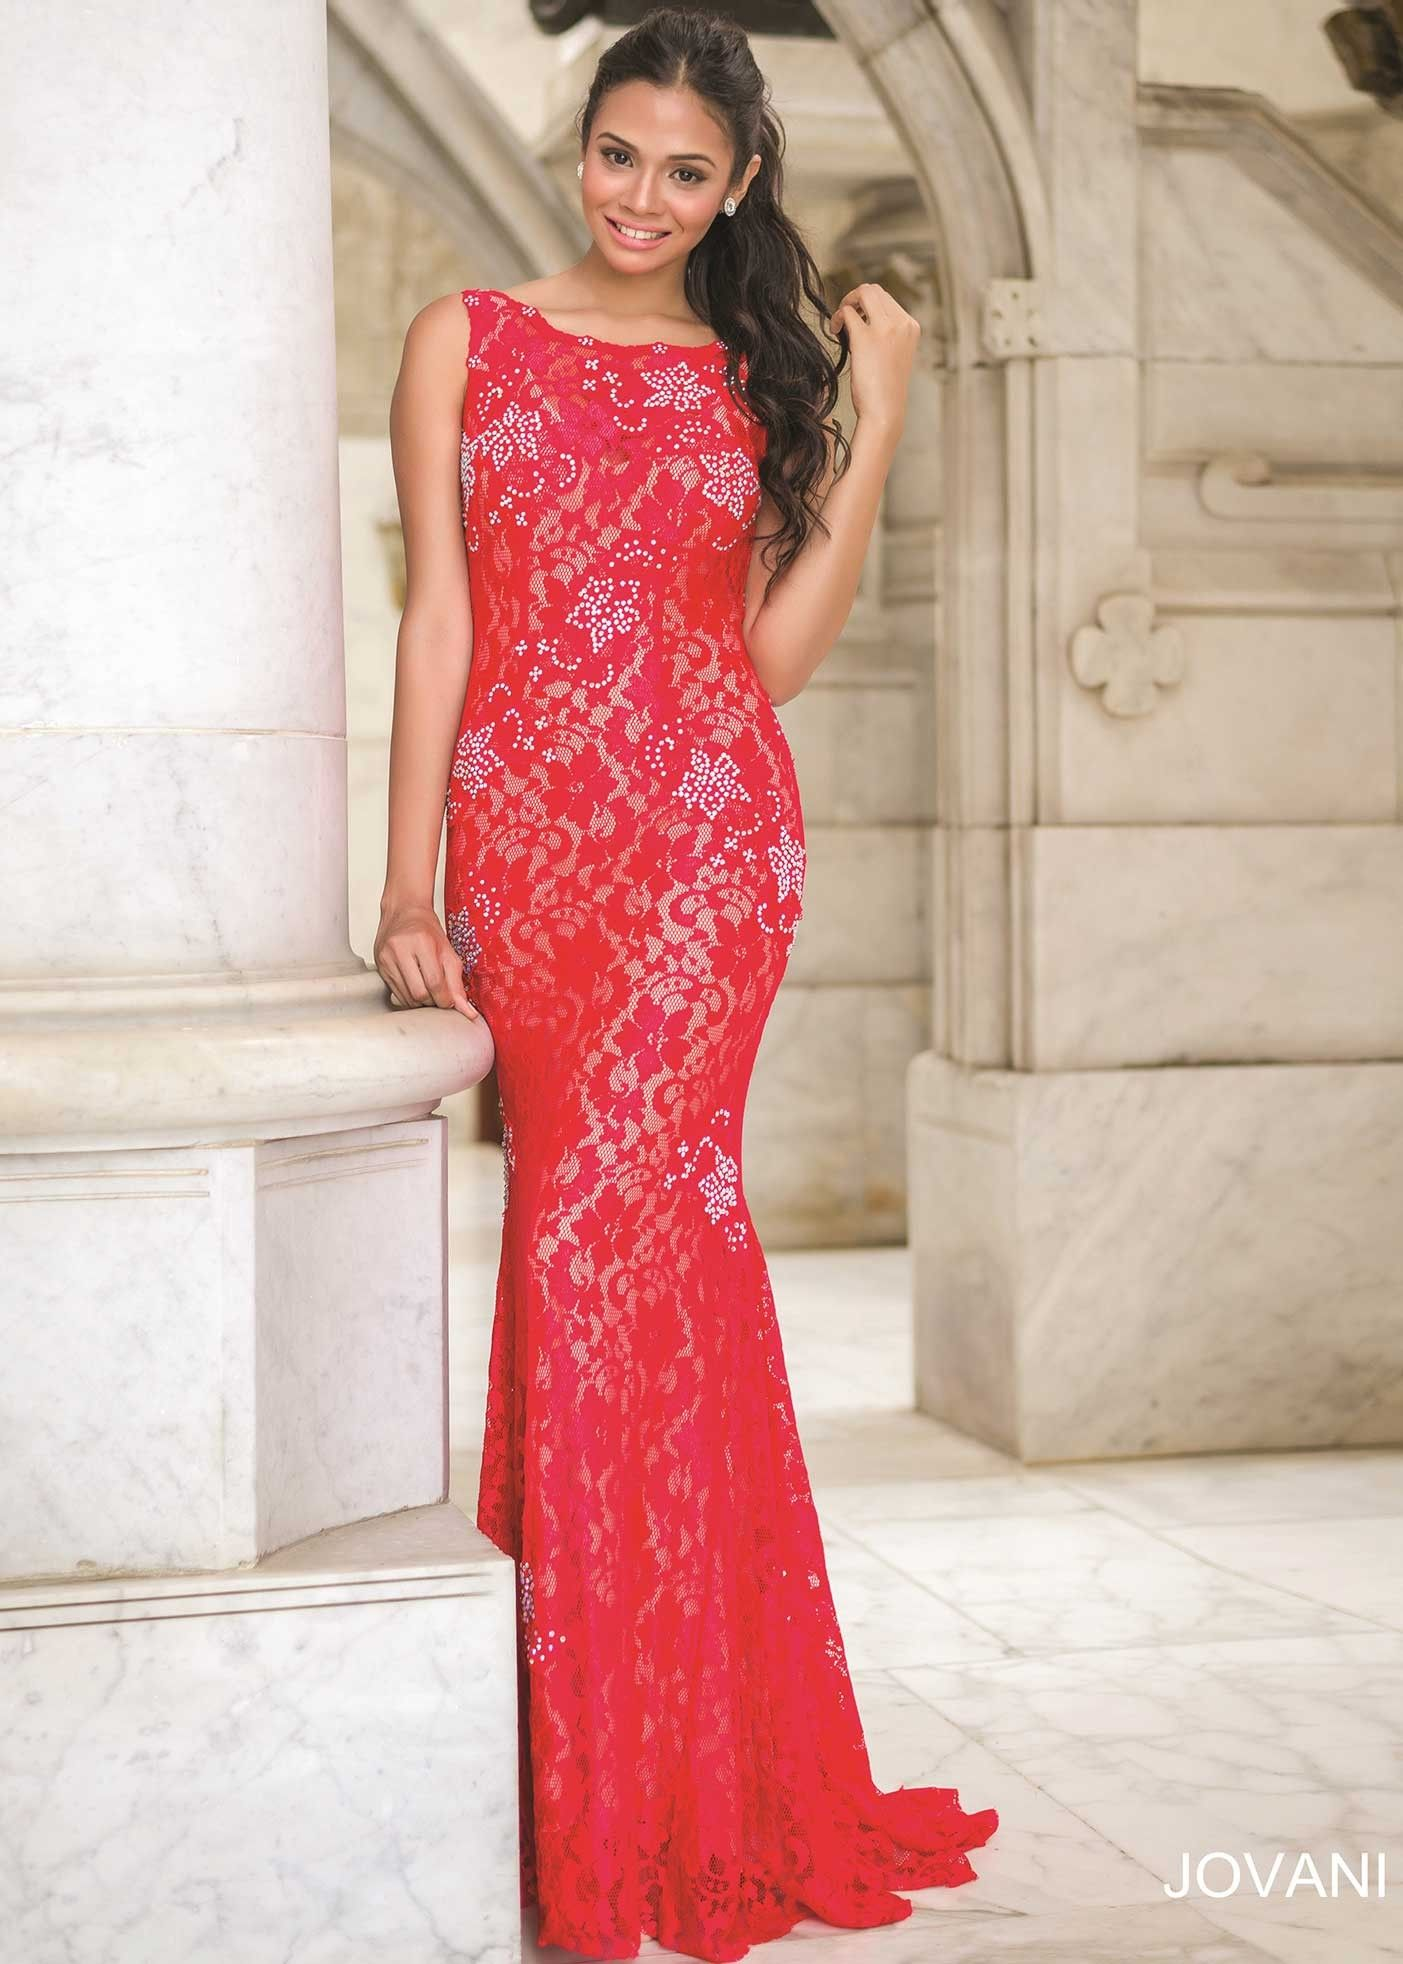 Jovani 21789 Sexy Red Backless Stretch Lace Prom Dress 2016 Prom